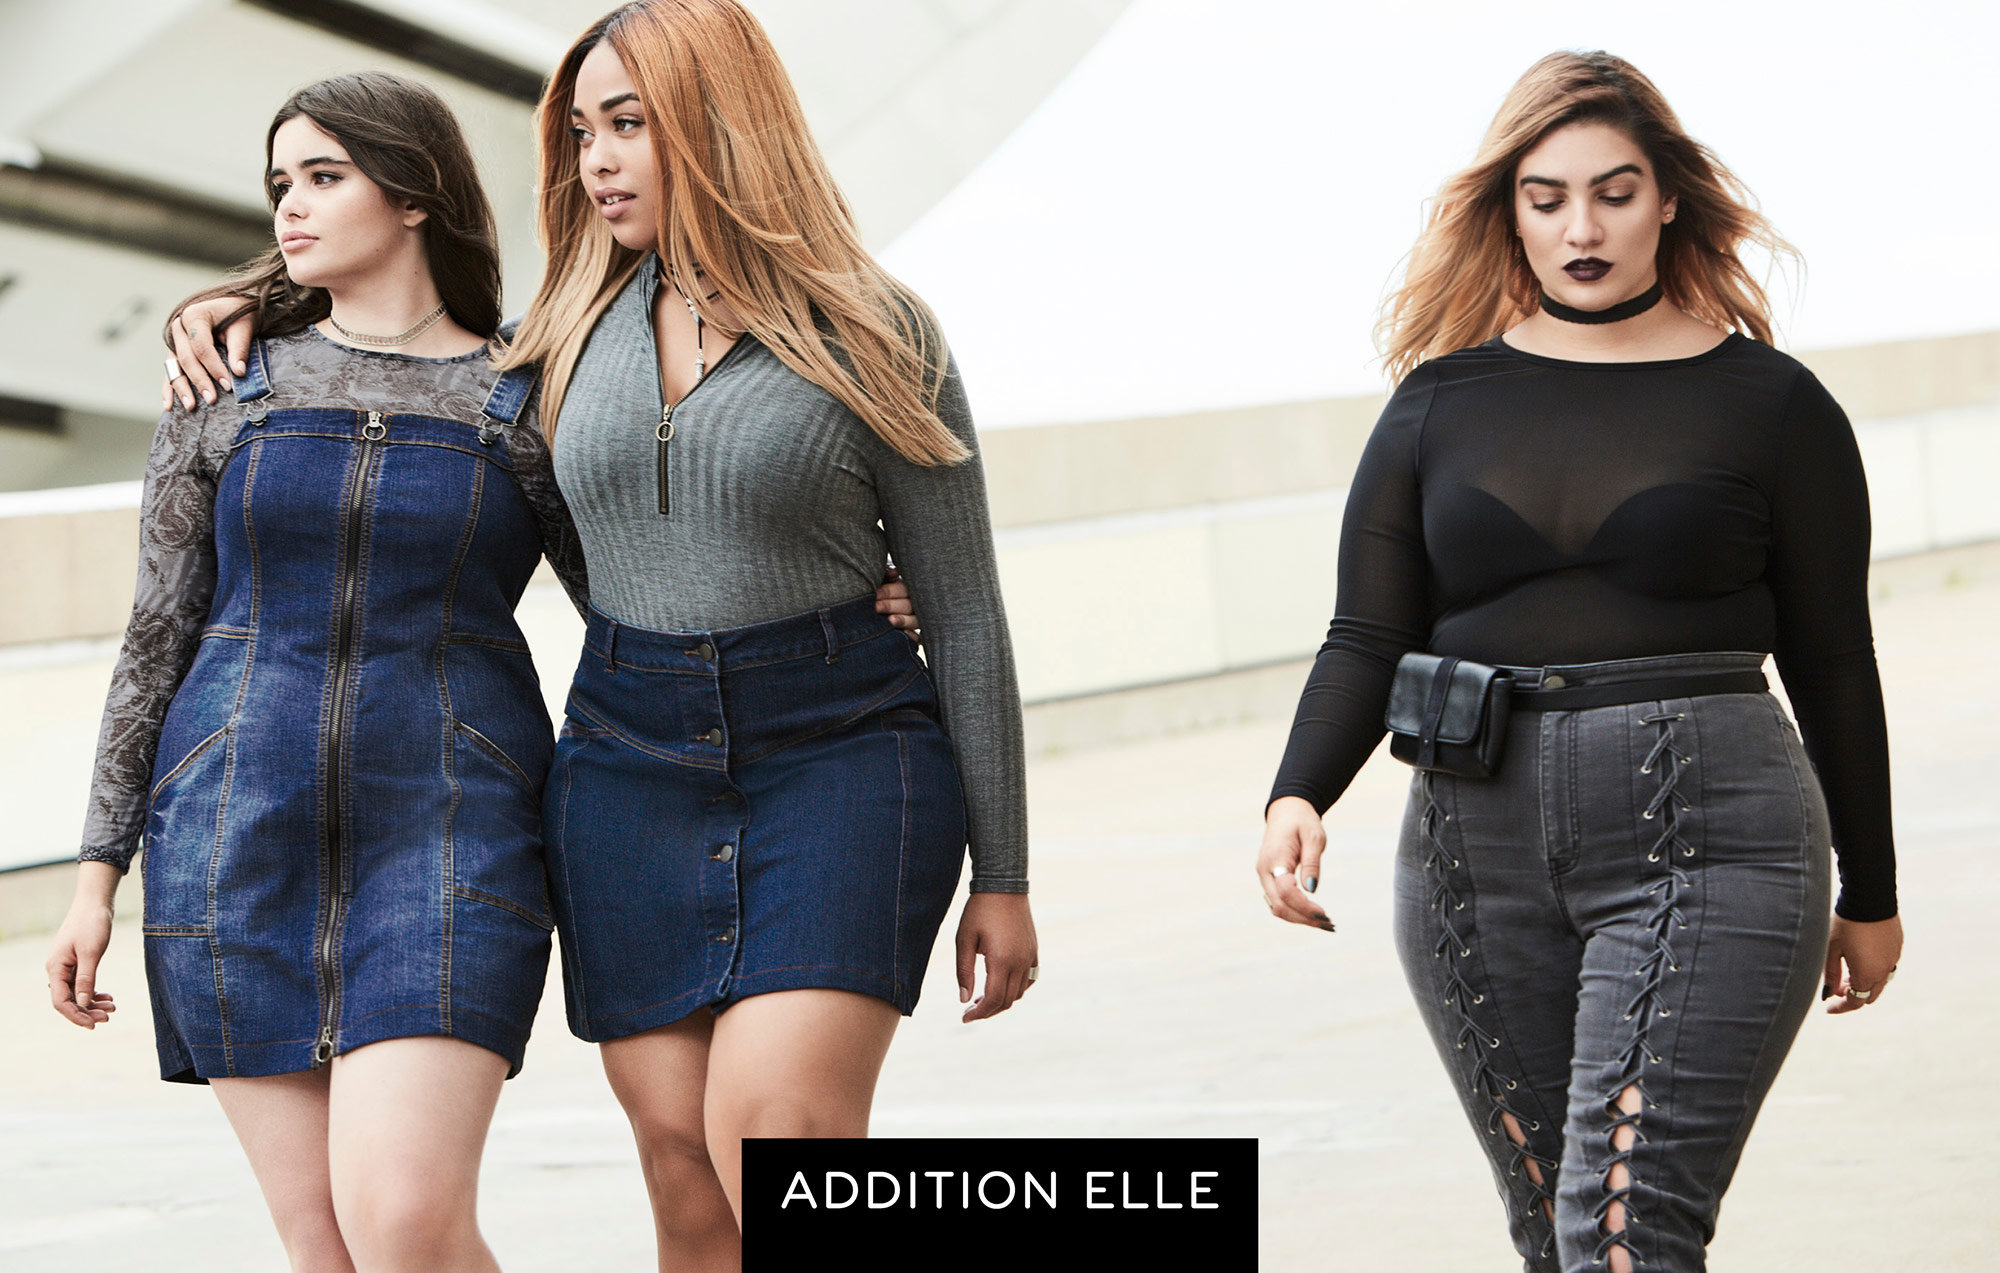 Addition Elle Campaign - Embed 2